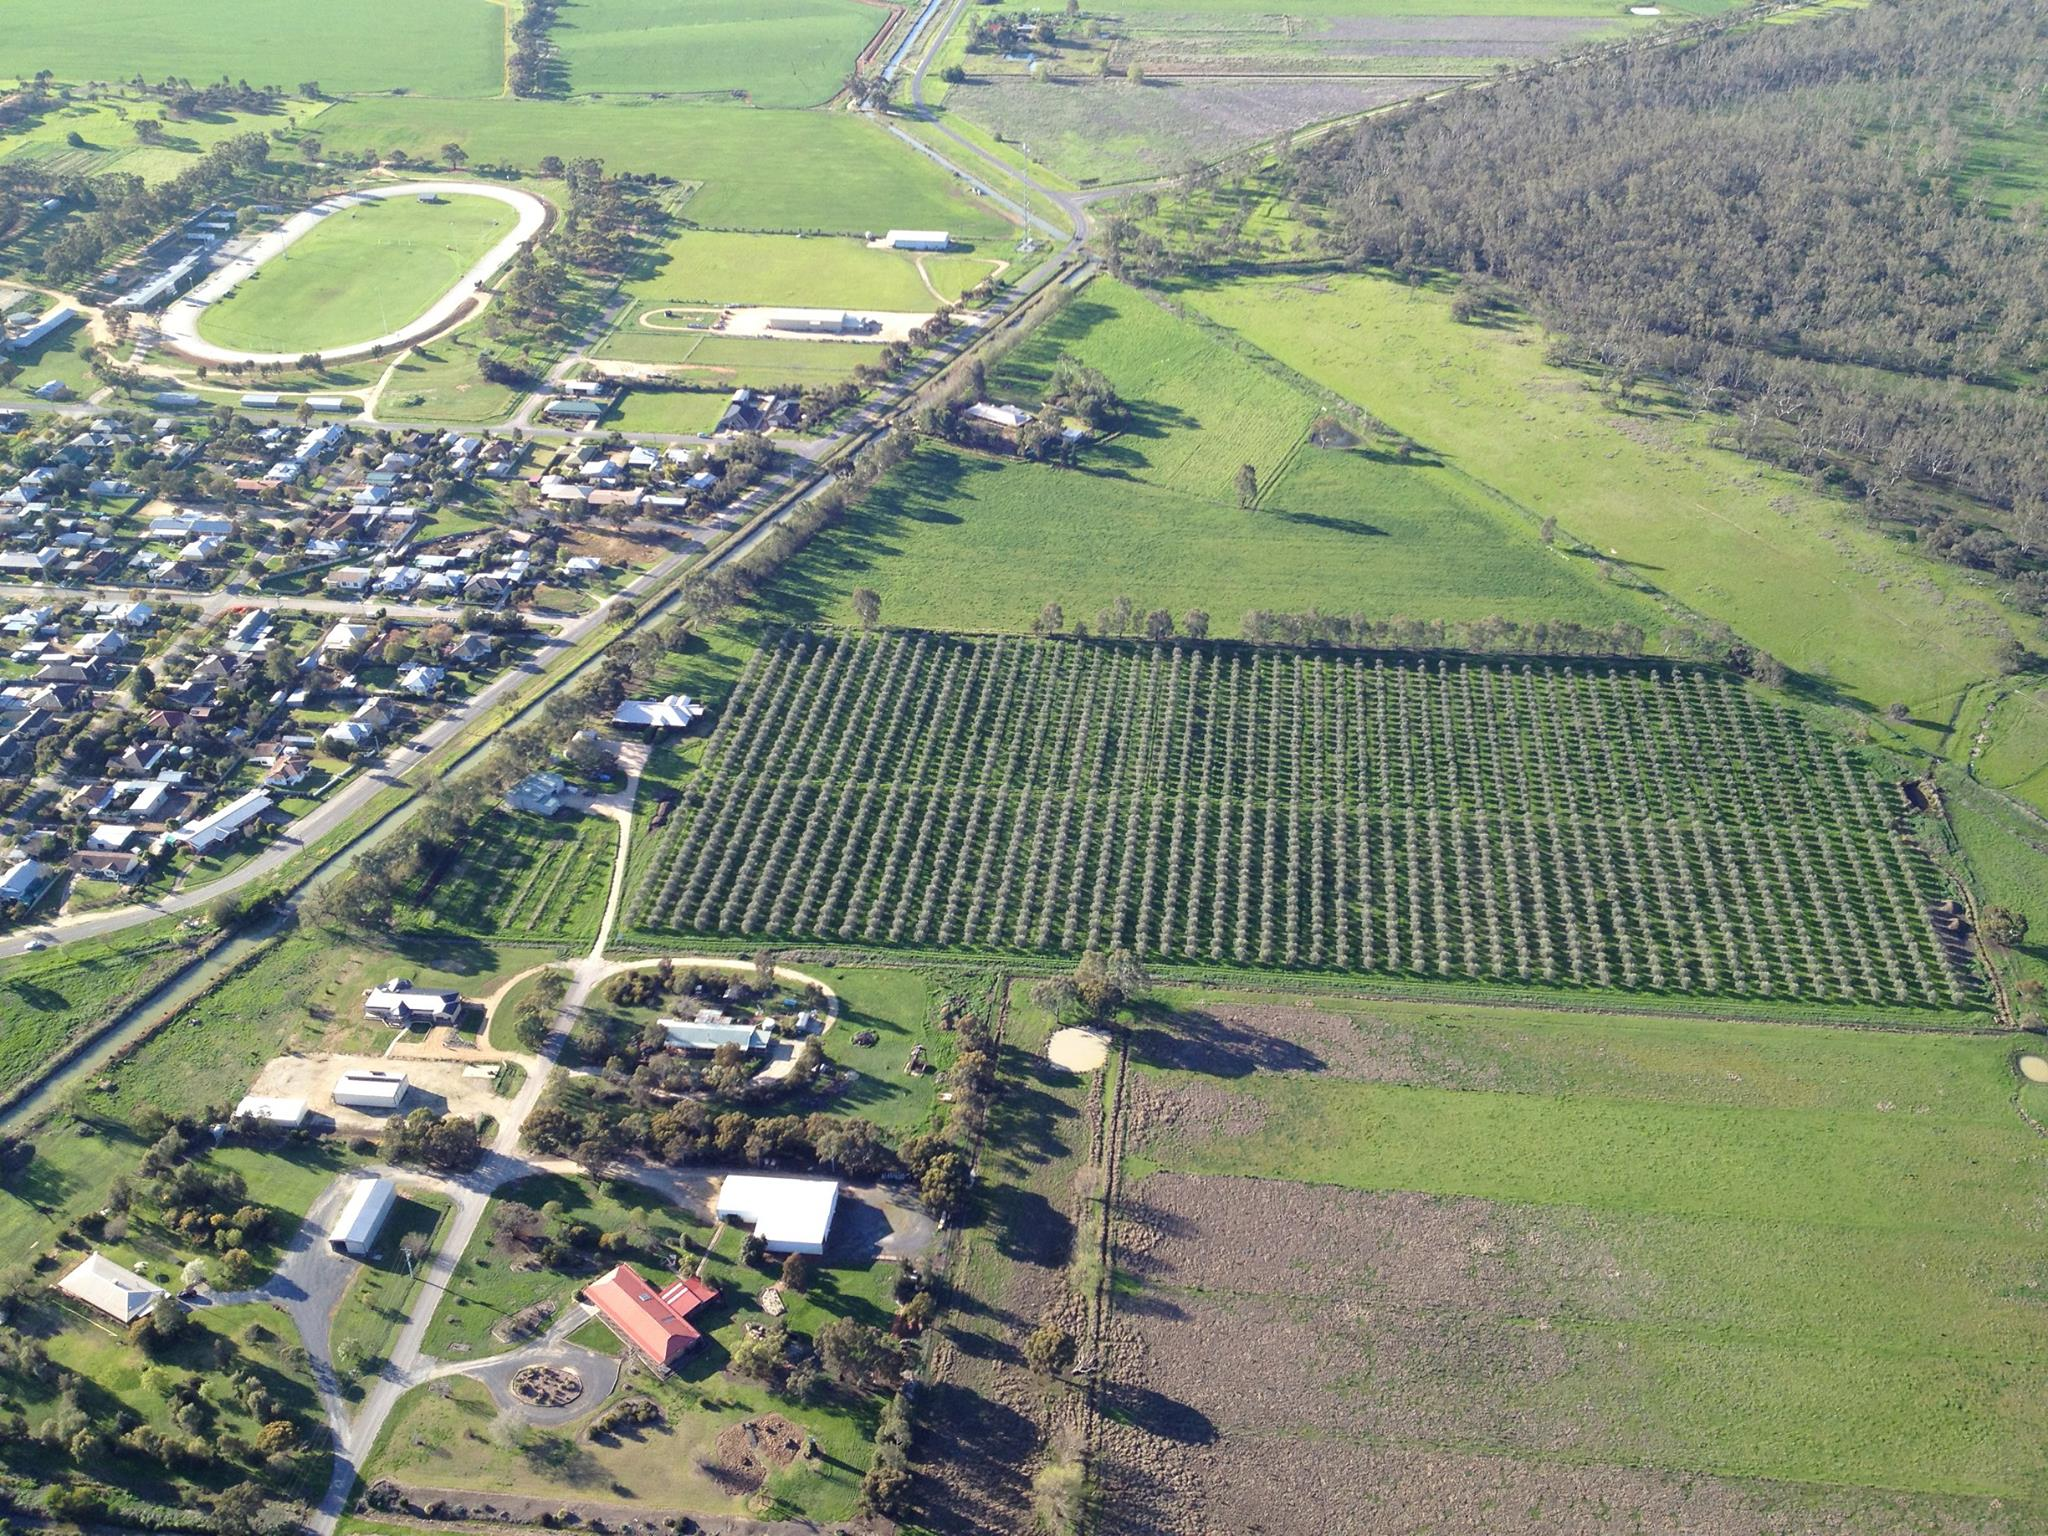 Aerial view of Salute Oliva olive grove